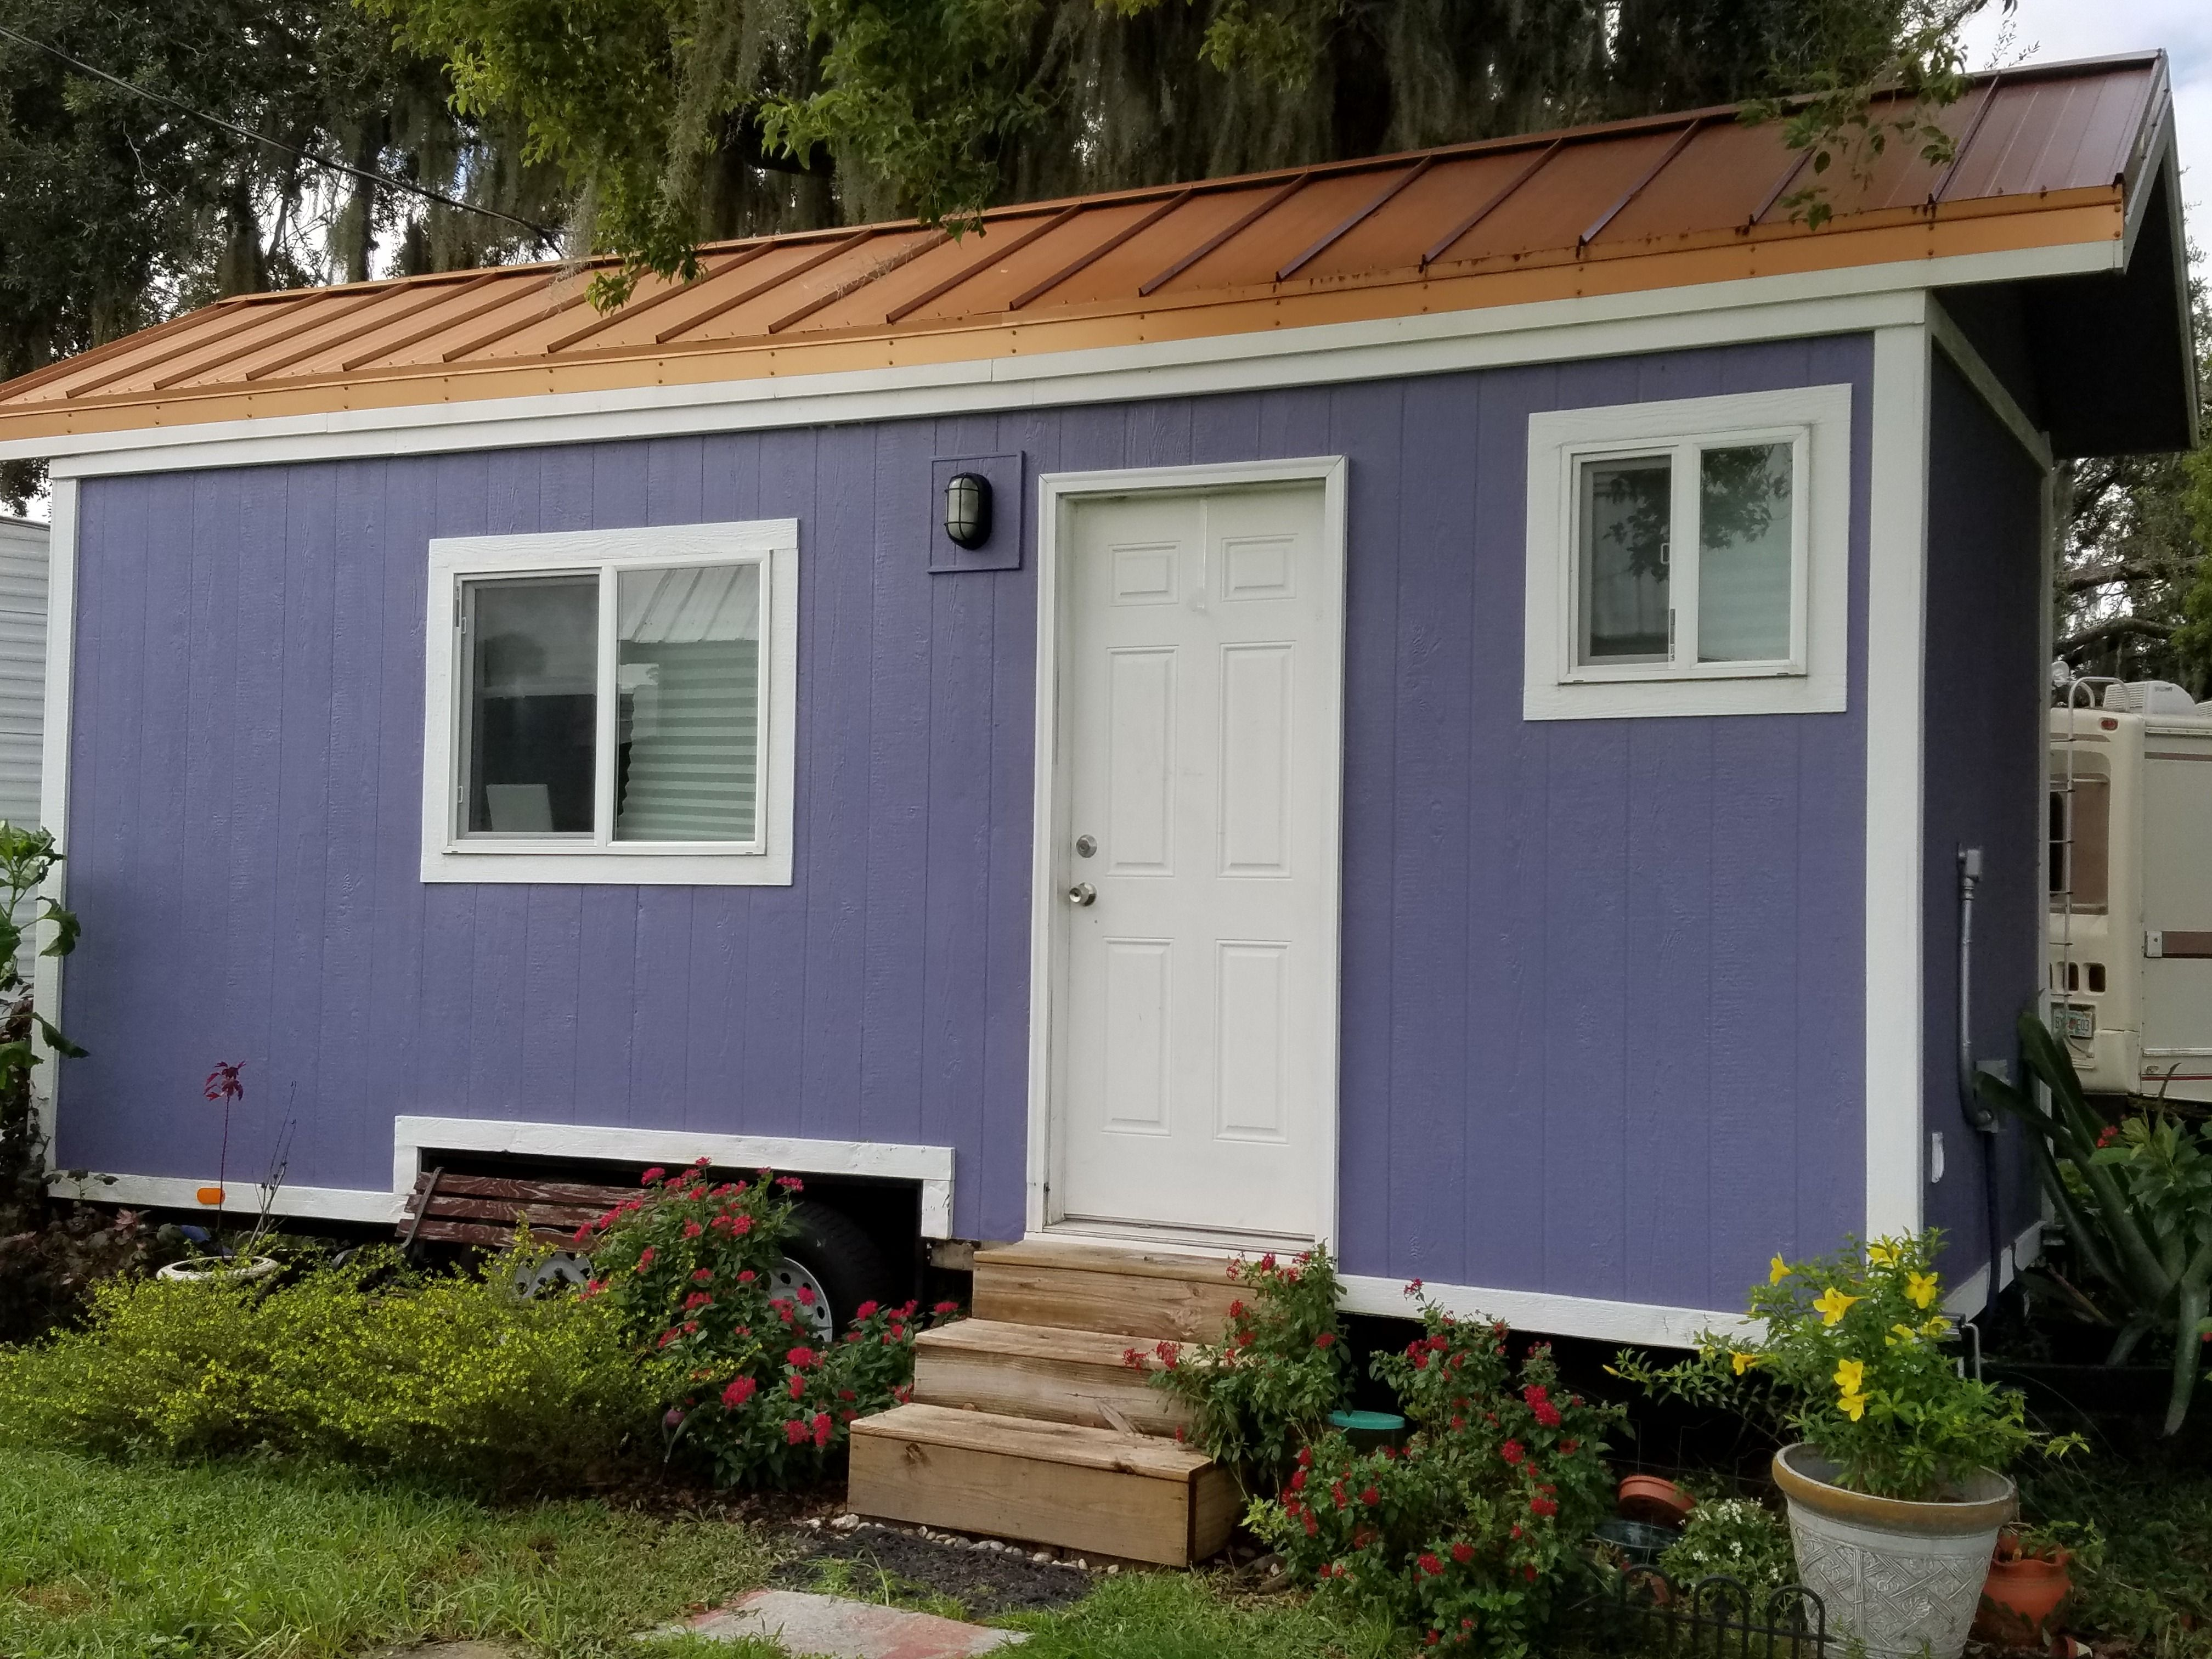 20' Tiny House on the Lake - Tiny House for Sale in ...